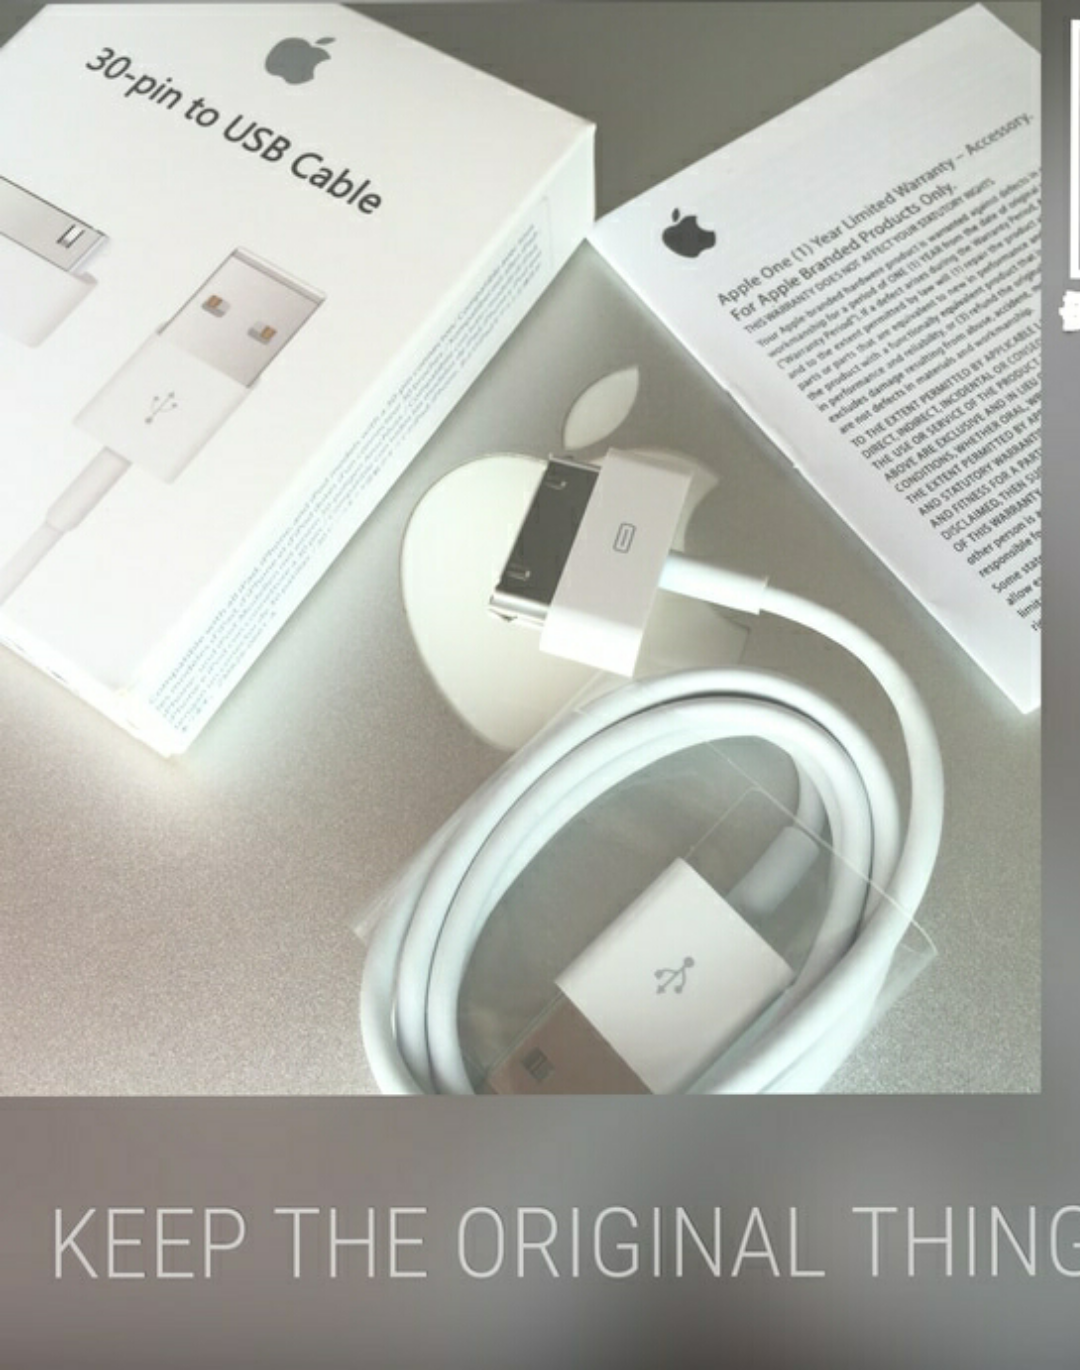 Jual Kabel Data Charger Iphone4 Ipad3 Ipad2 Original Apple Iphone 4 4g 4s Ipad Luxer Tokopedia